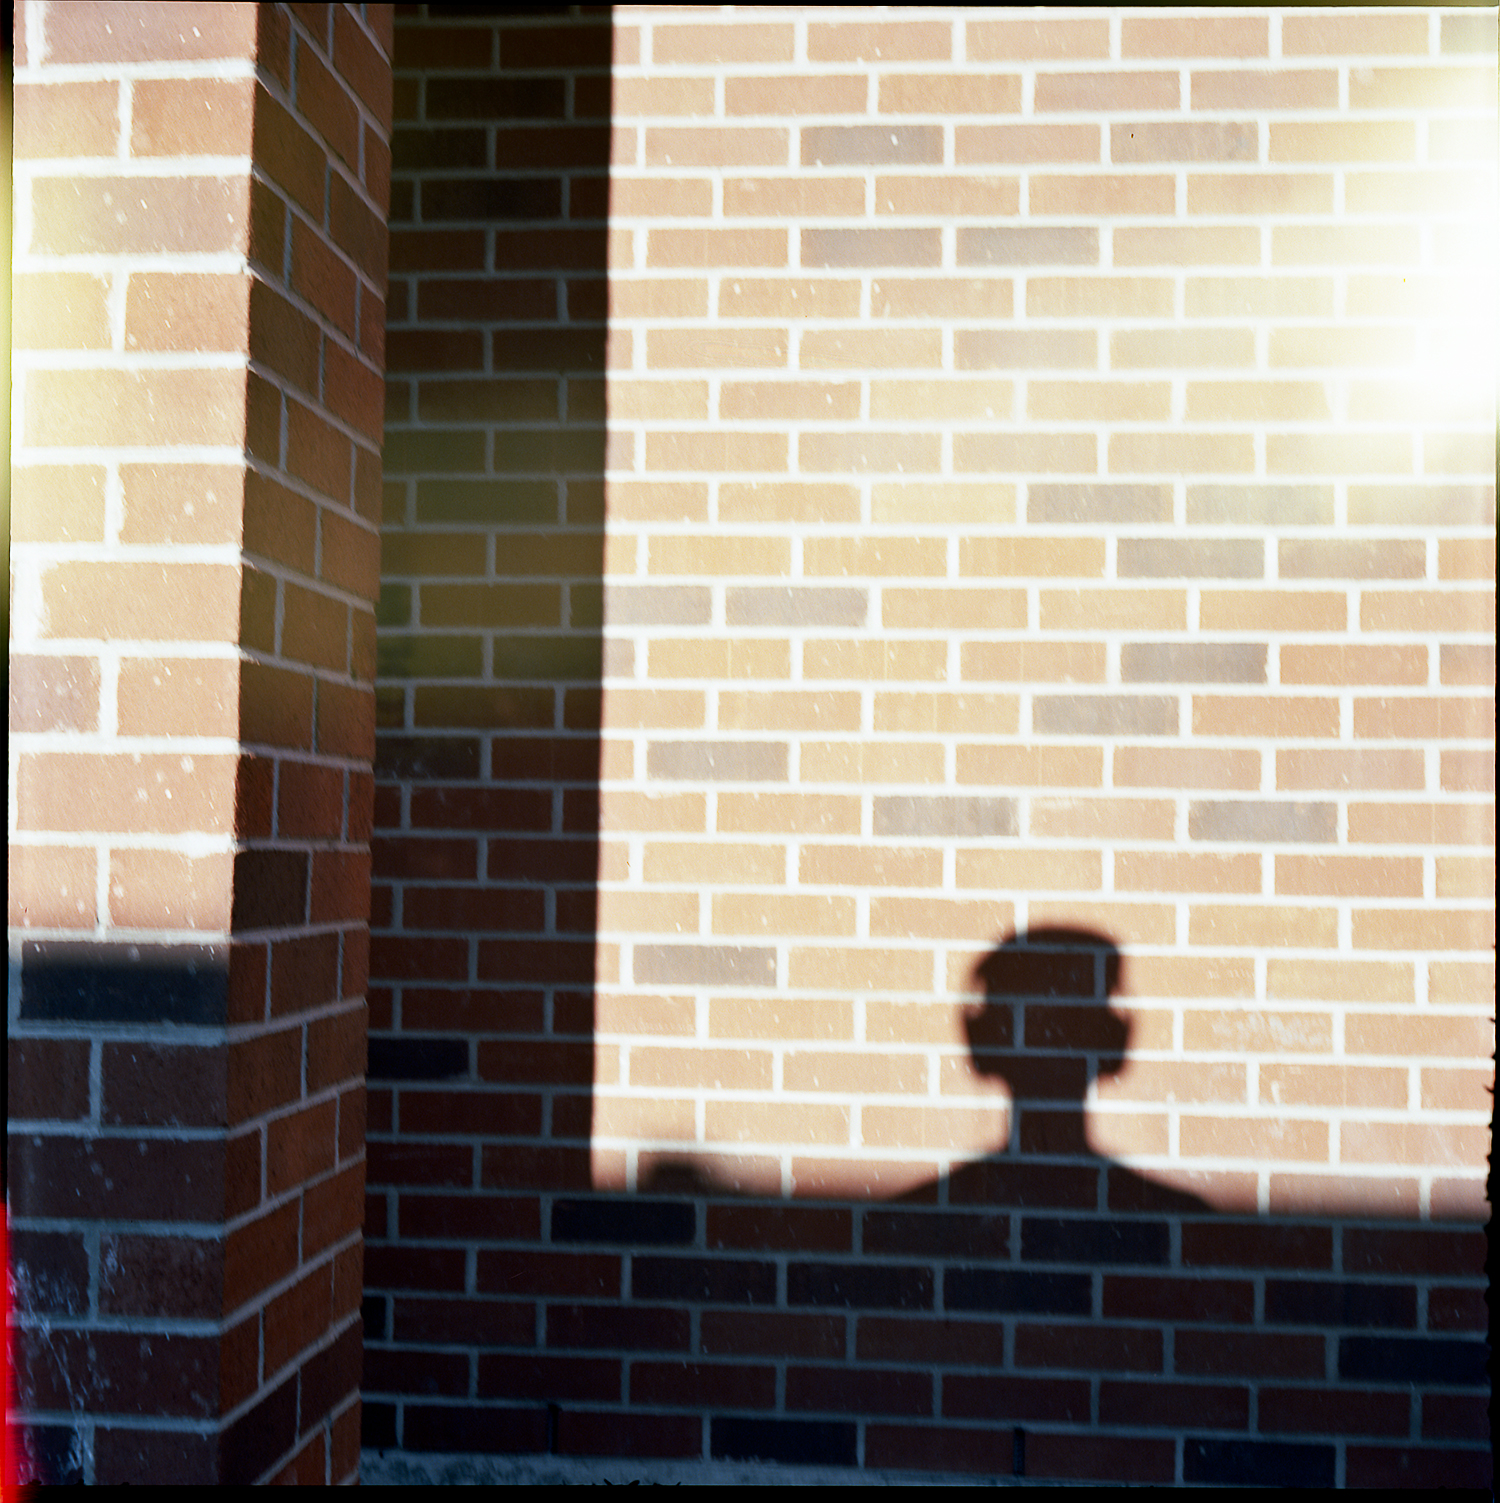 86-Summer-2015-Extra-Self-Portrait-in-the-shadows.jpg